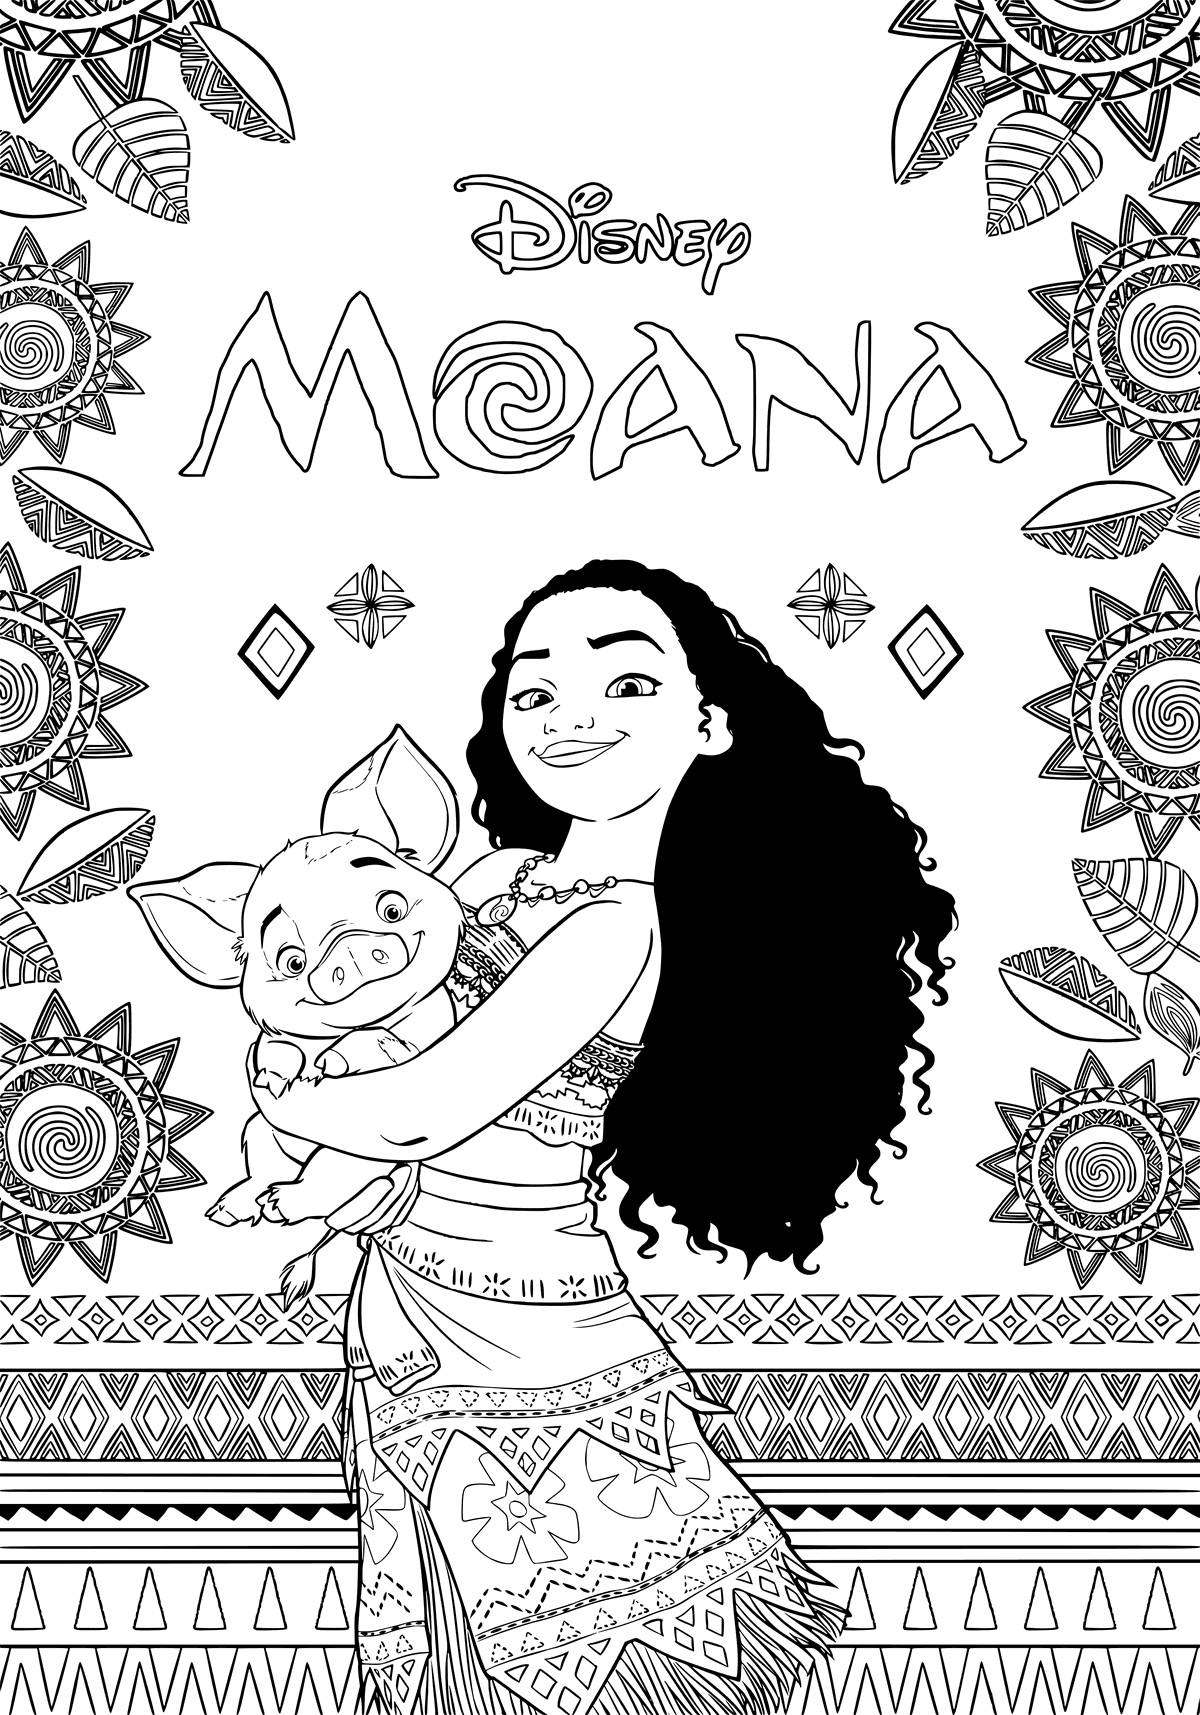 moana coloring pages moana for children moana kids coloring pages pages coloring moana